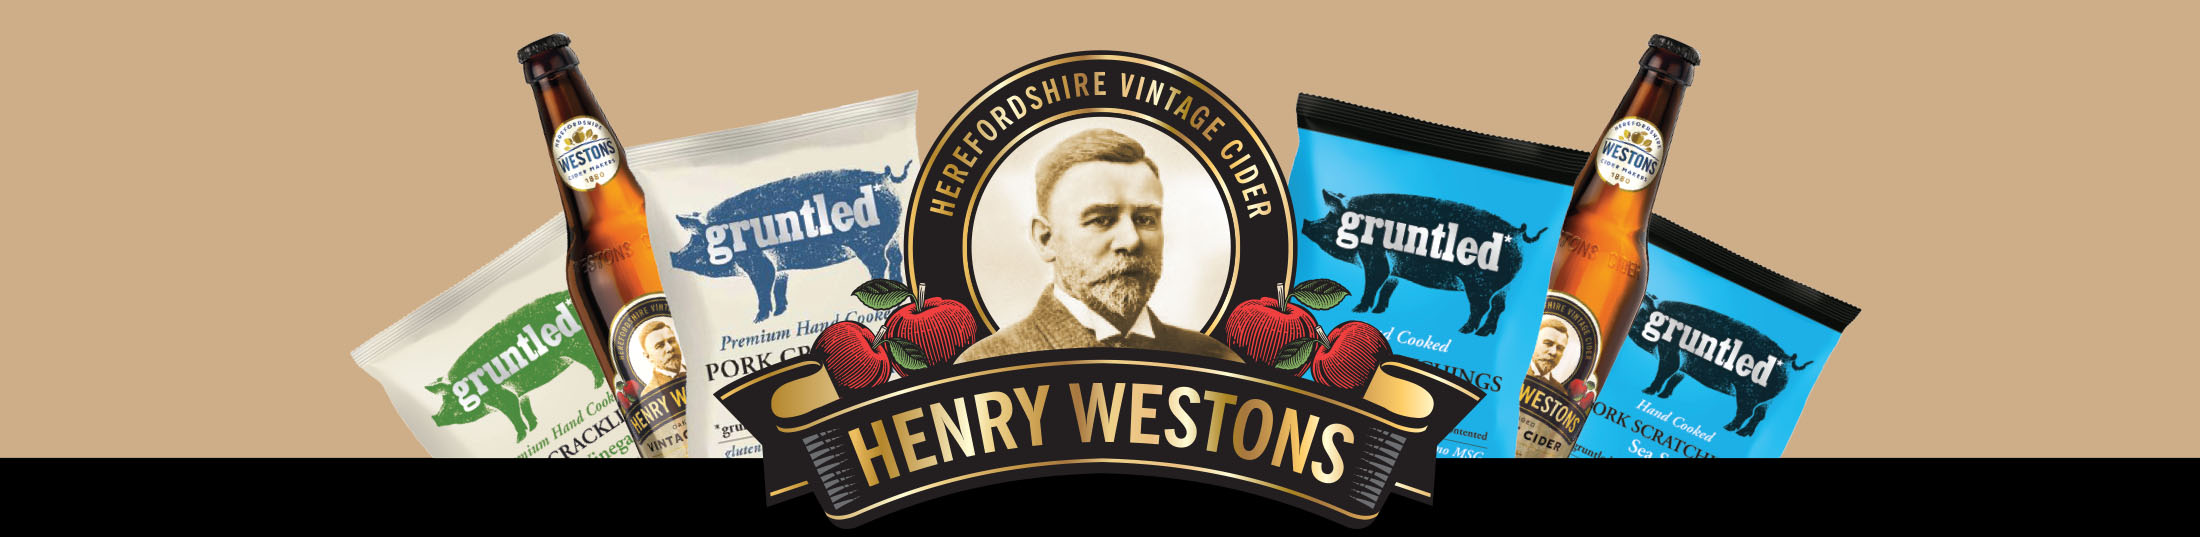 Henry Westons Vintage Night Inn